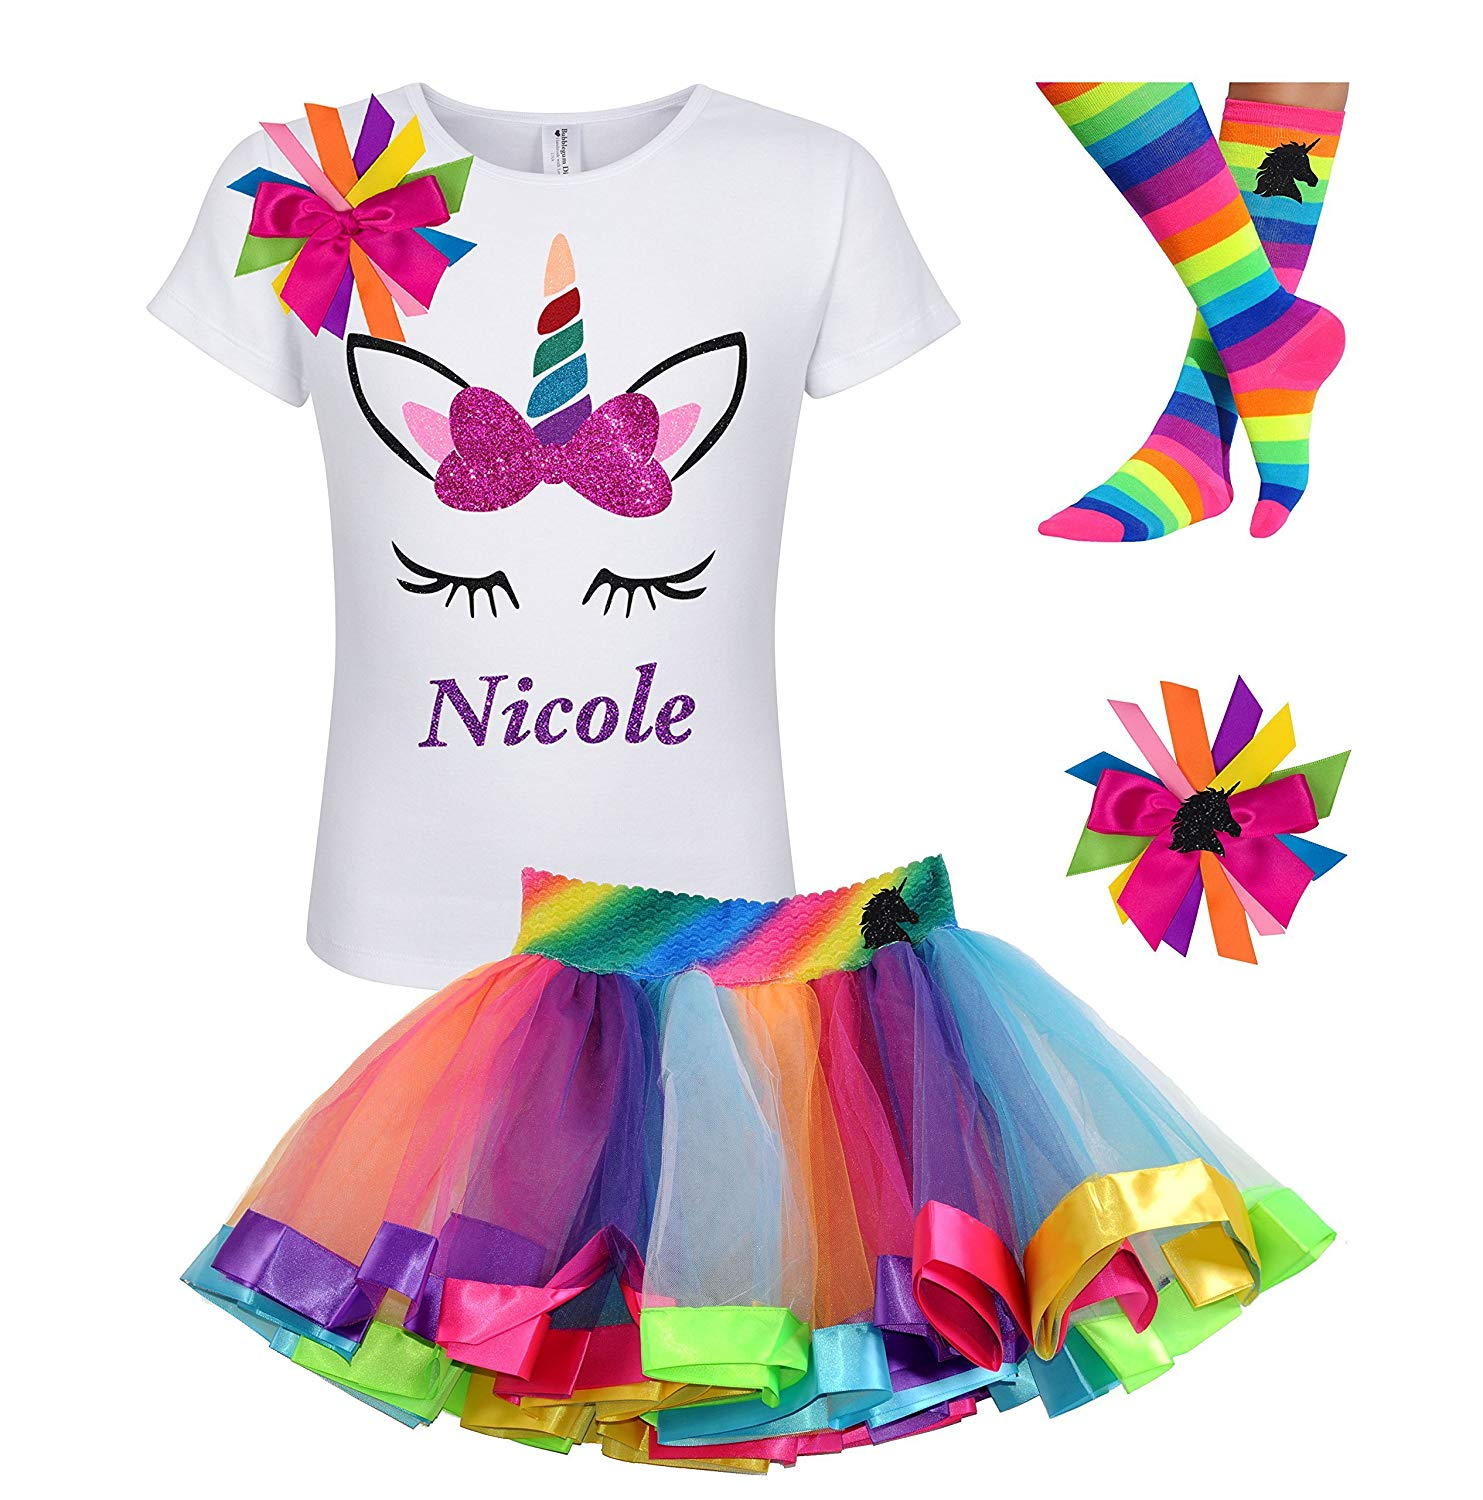 01caa4834ac0 Get Quotations · Rainbow Unicorn Shirt Stripe Tutu Outfit Girls Birthday  4PC Gift Set Personalized Name